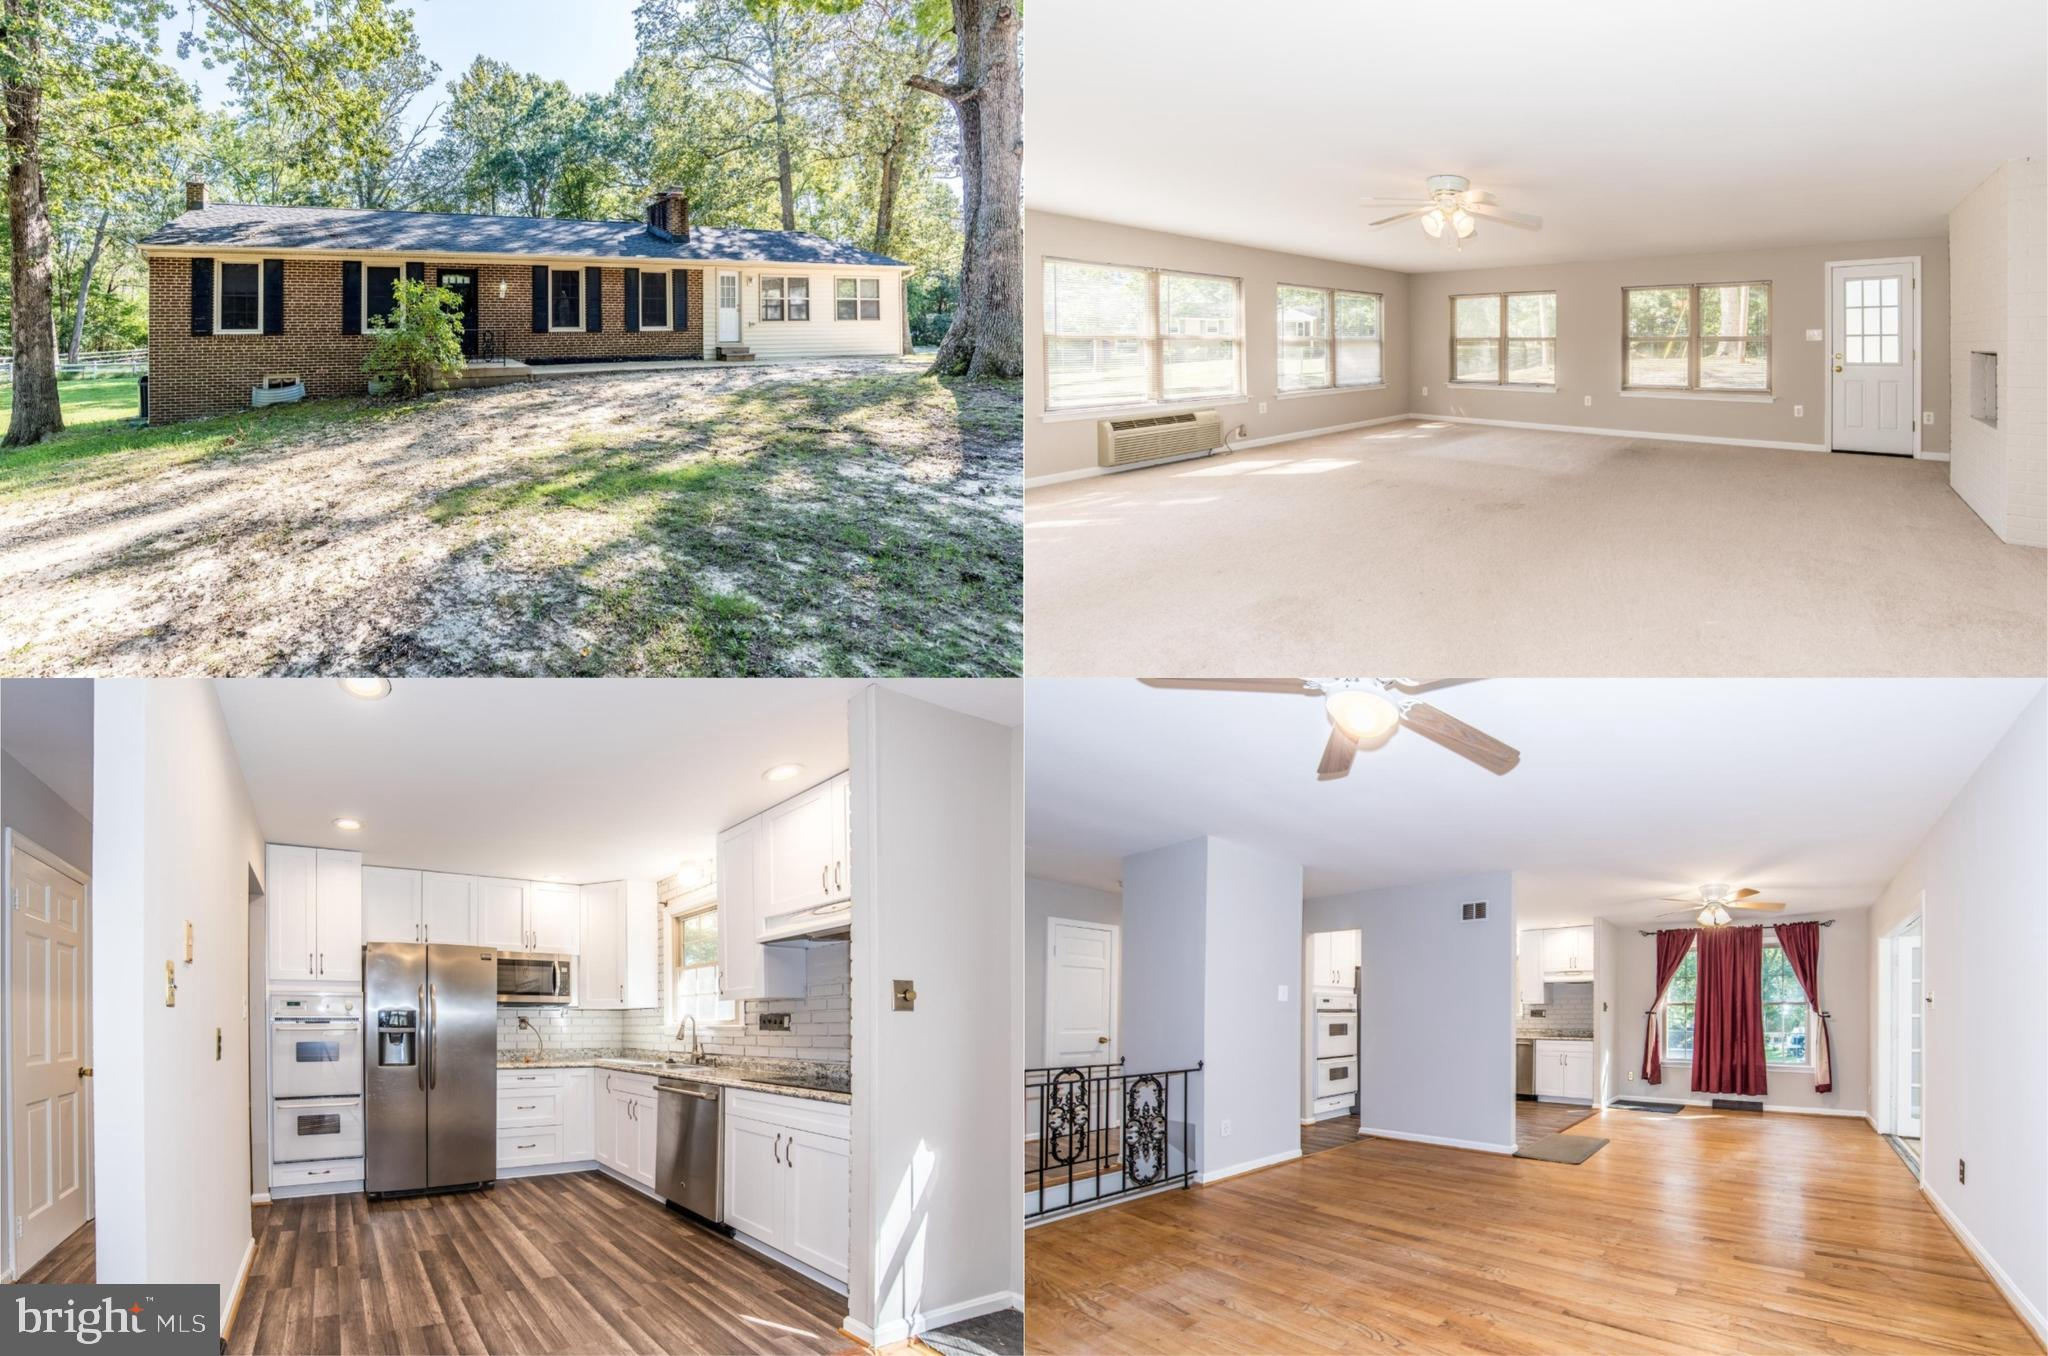 This beautiful 4 bedroom, 3 full bath home is nestled on a peaceful and premium .71 acre lot offerin